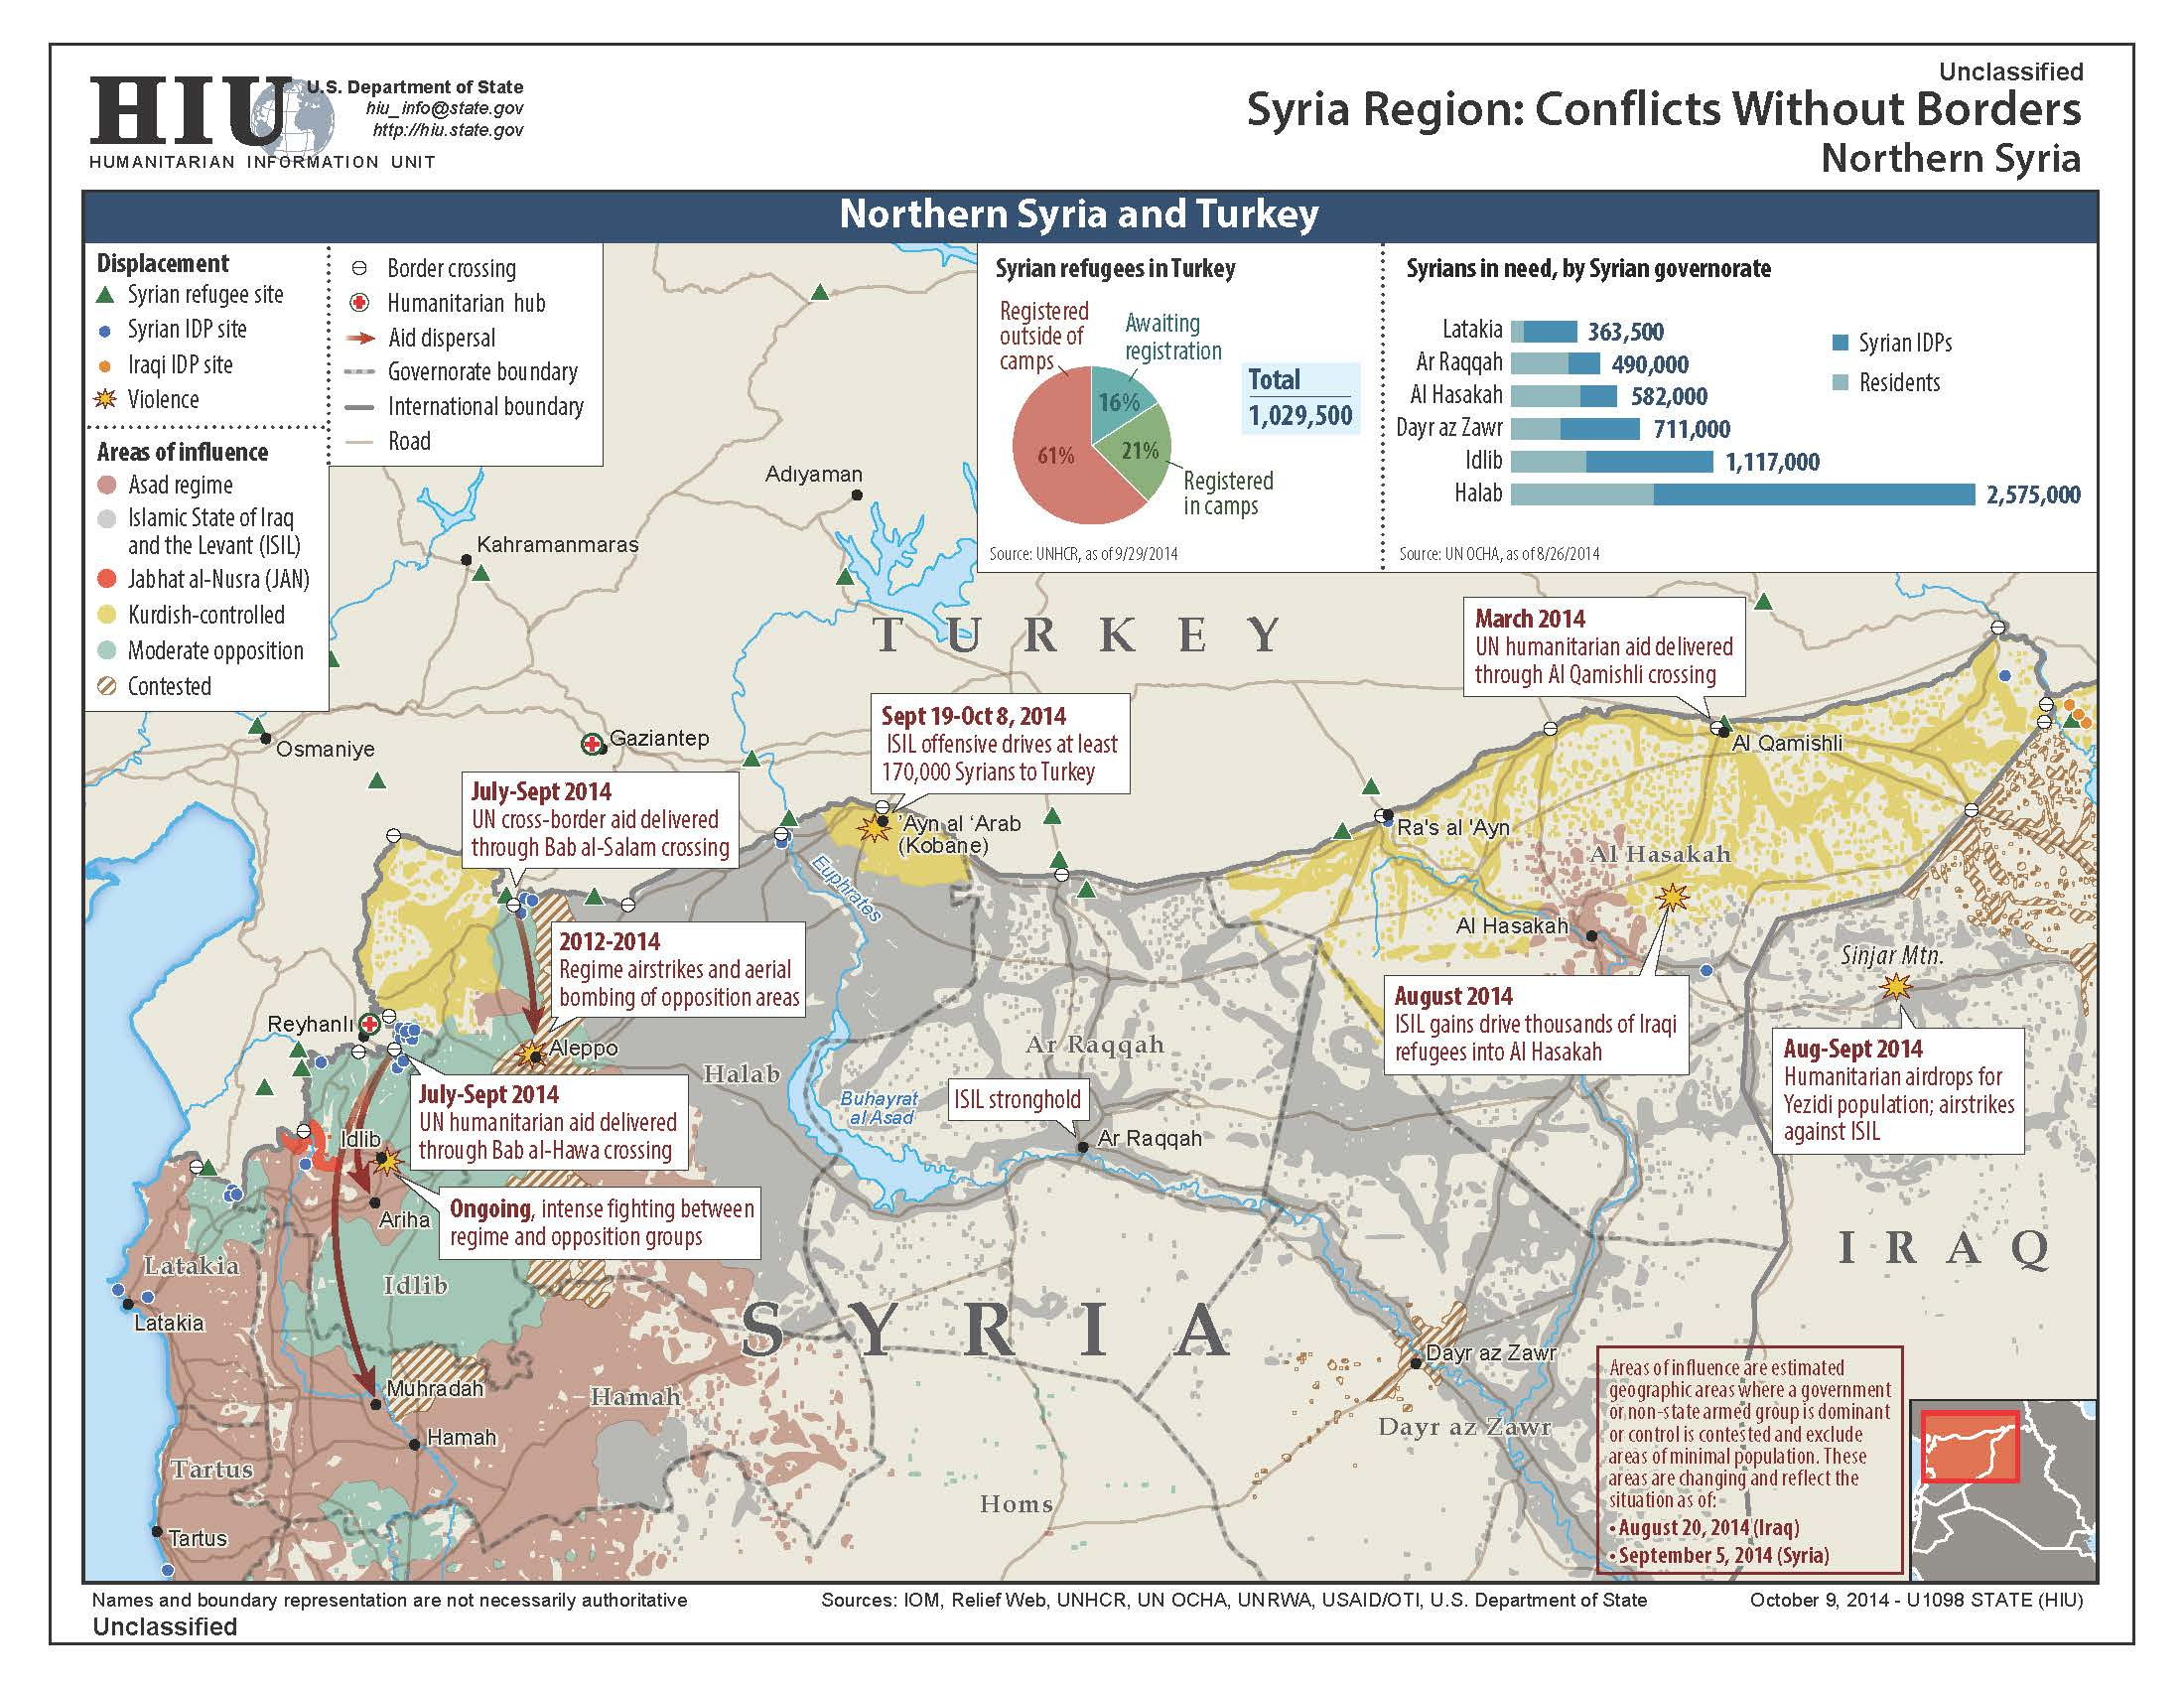 Us state department iraq syria conflict without borders map dos syria isilpage3 gumiabroncs Image collections